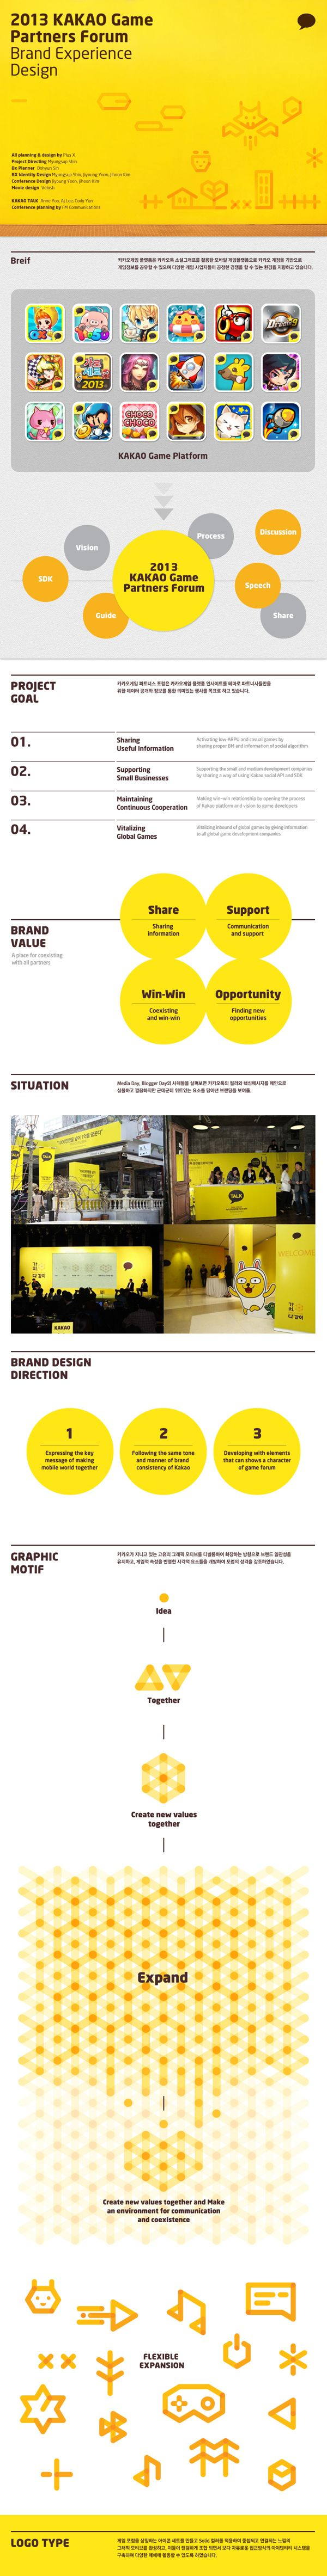 KAKAO Game Partners Forum Brand eXperience Design by Plus X, via Behance